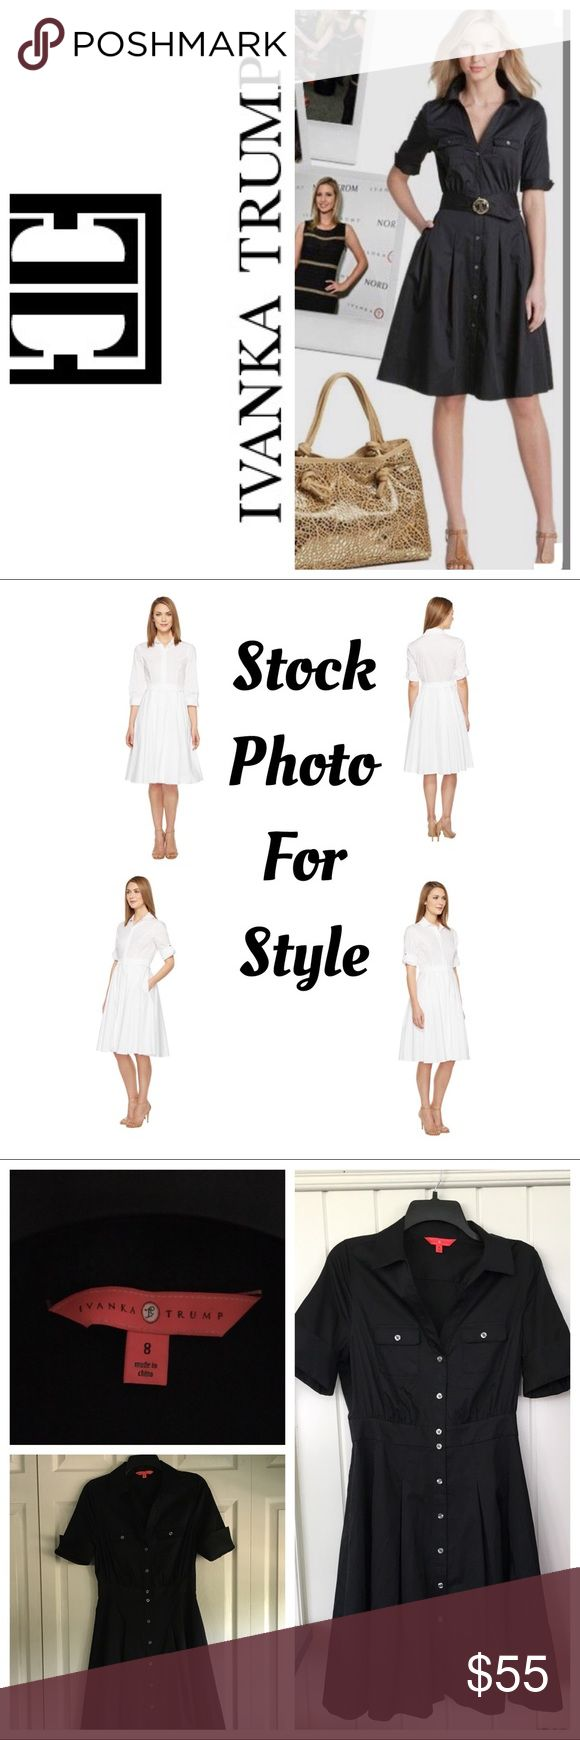 """Ivanka Trump Cotton Flare Pleated Dress Black Flaunt a classic look with this crisp cotton-blend dress. Fit-and-flare silhouette with feminine pleated details at the waist. Fold-over collar. Zip closure boasts a hidden flap detail. Size 8. Please read measurements as this runs a little small depending on your body frame- waist at band- 14"""" Underarm to Underarm- 14"""" Shoulder to Cuff (folded up)- 11"""" Length from waistband to bottom- 21.5"""" length from Shoulder to bottom- 38"""" Shoulder to…"""